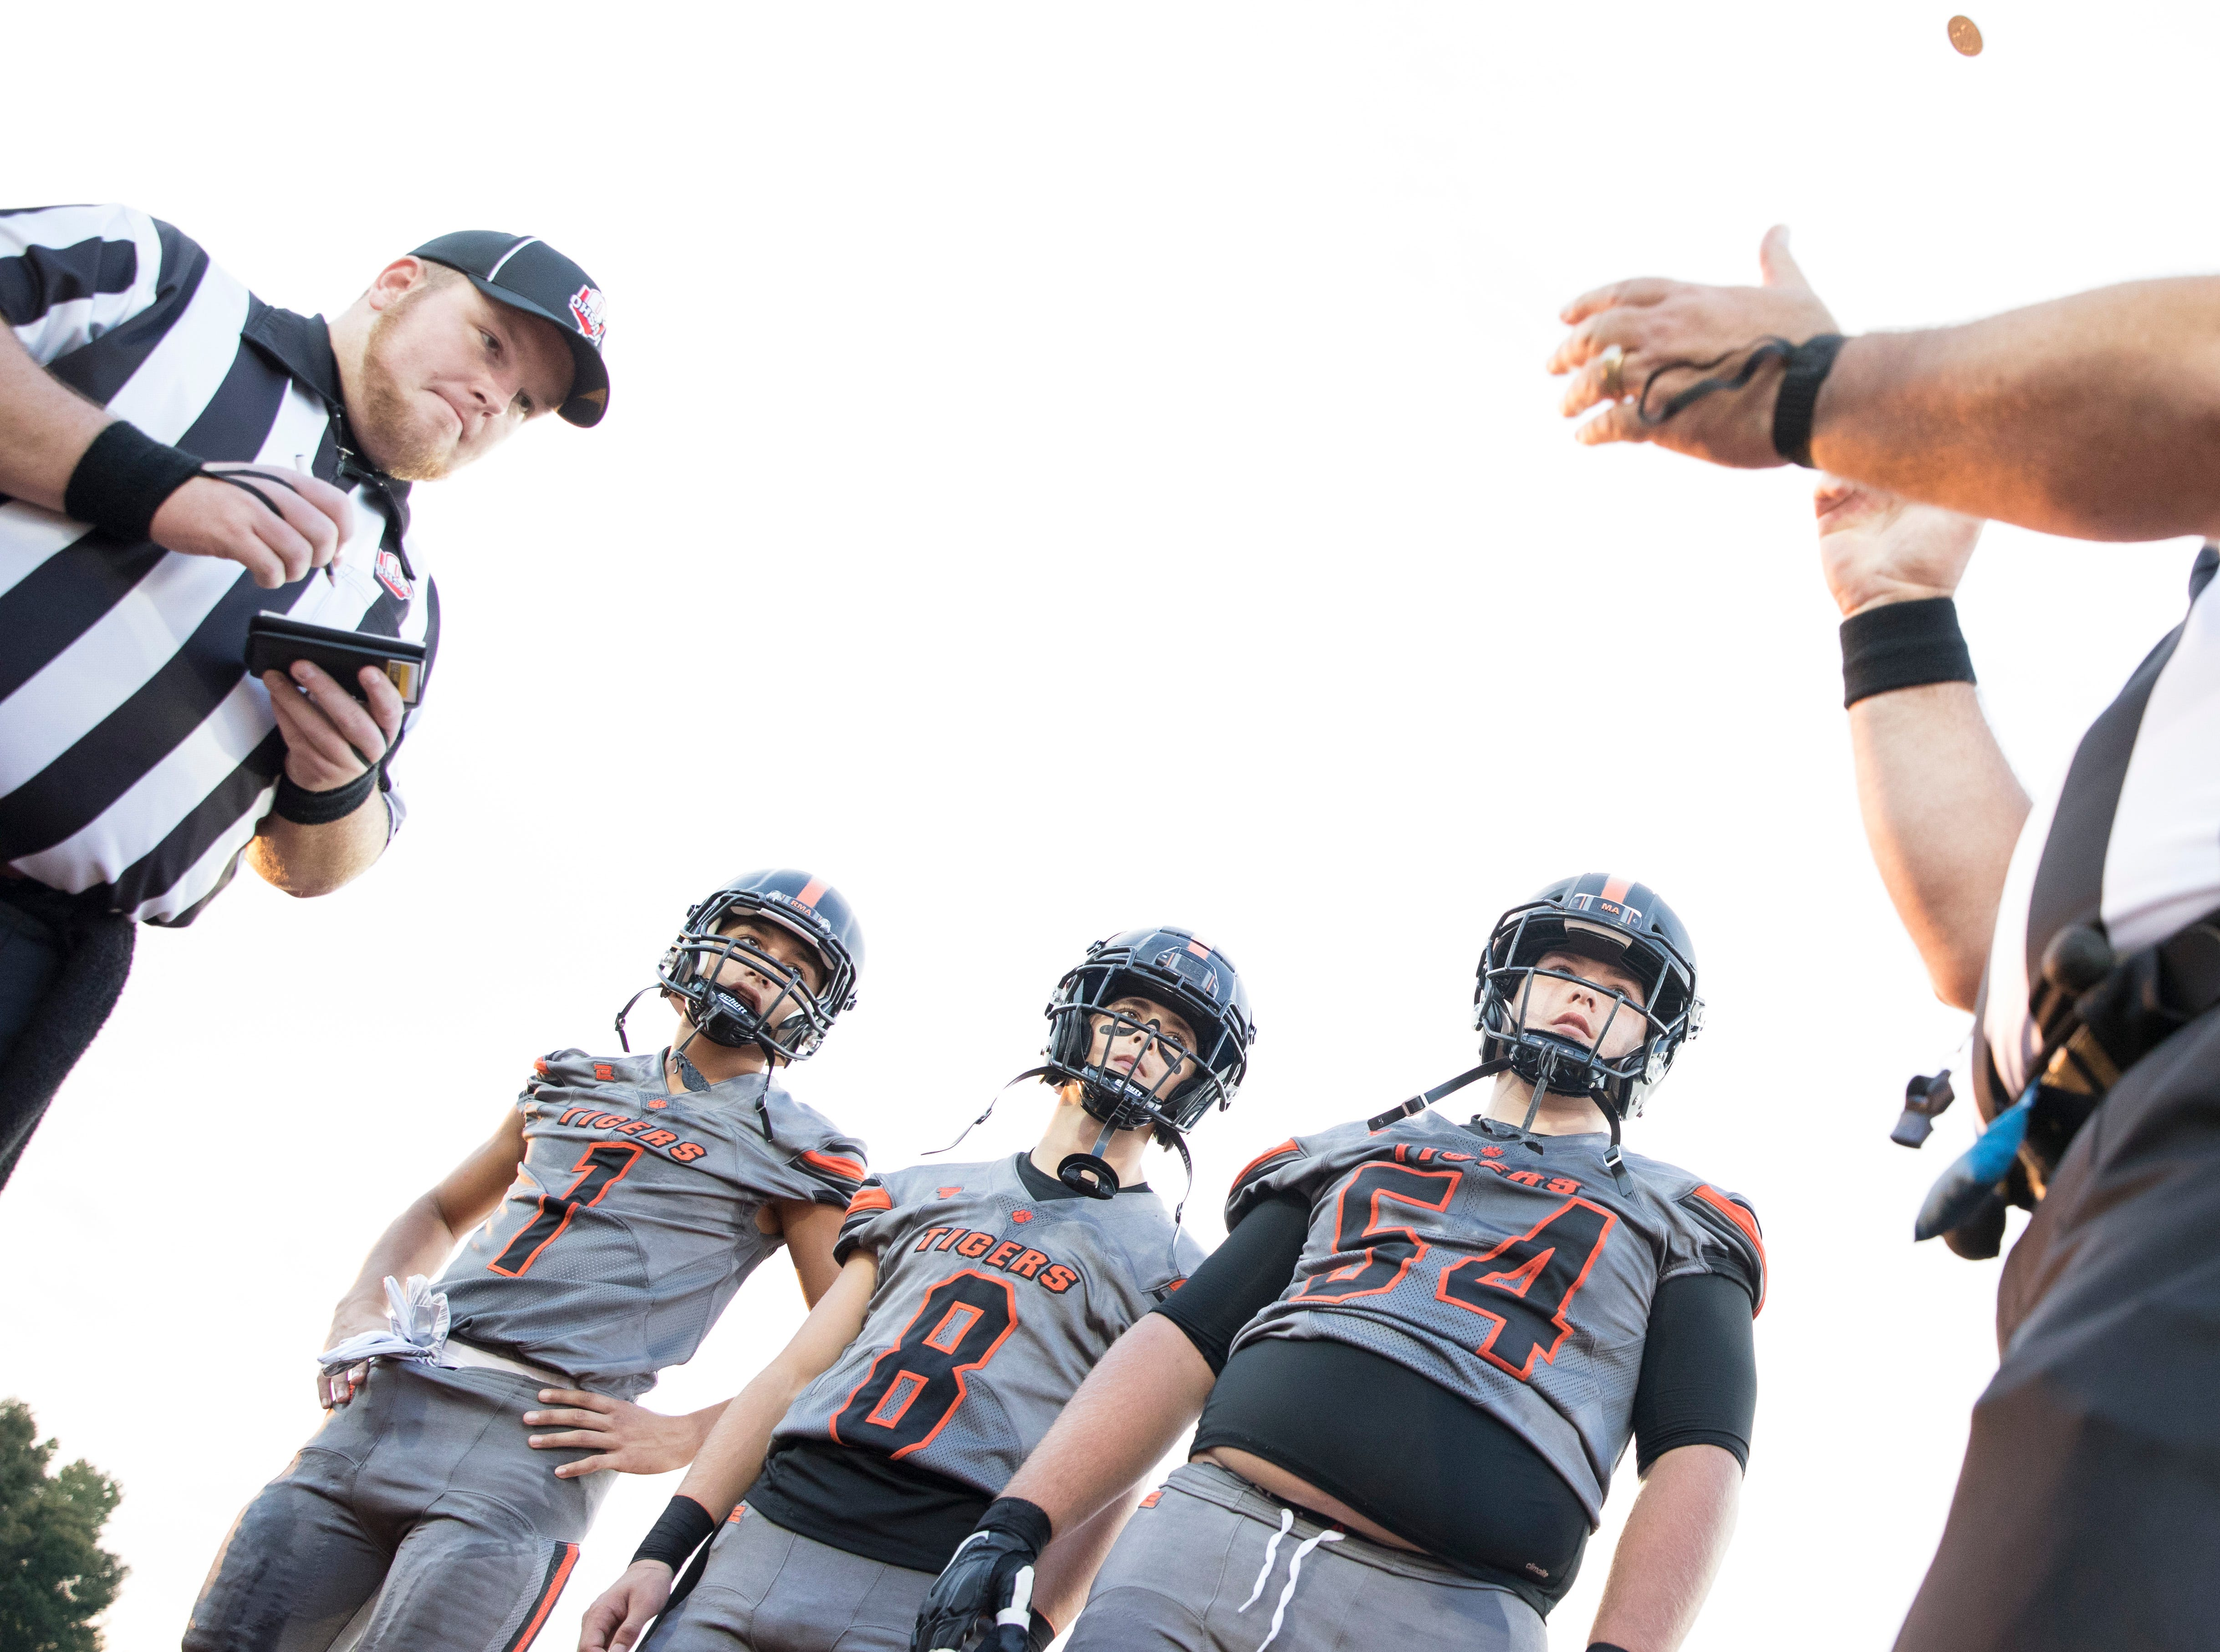 Waverly football seniors, left to right, Cobe Marquez, Ethan Brooker, and Macayne Bock await the results of the coin toss before their game against Wheelersburg on October 5, 2018, in Waverly, Ohio.